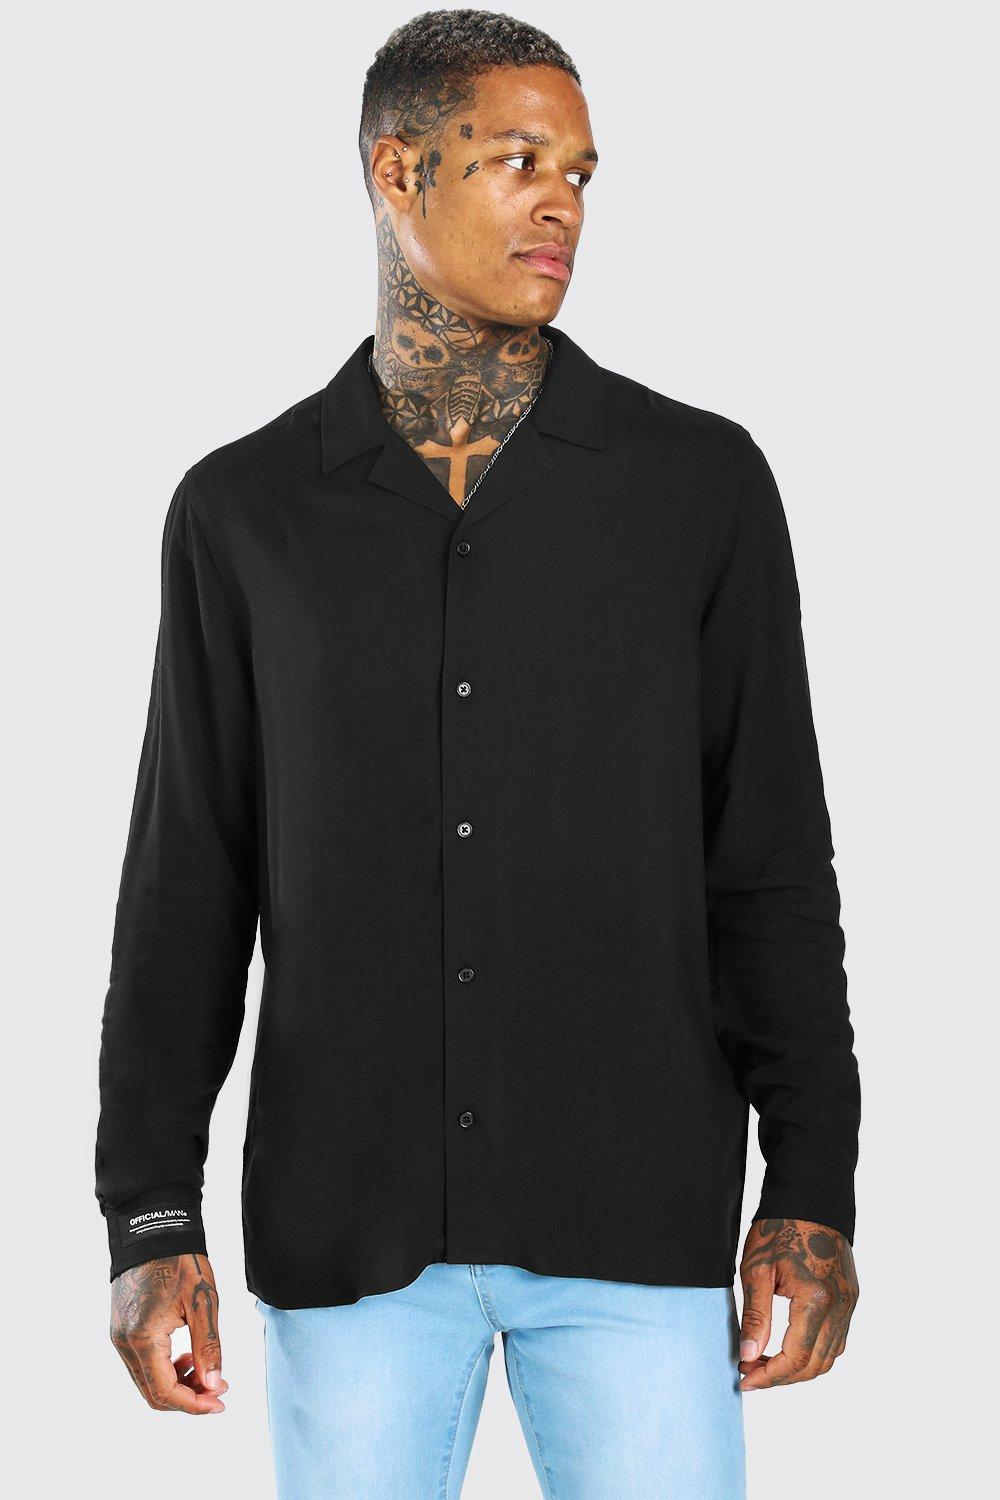 1940s UK and Europe Men's Clothing – WW2, Swing Dance, Goodwin Mens MAN Cuff Tab Long Sleeve Oversized Shirt - Black $10.00 AT vintagedancer.com